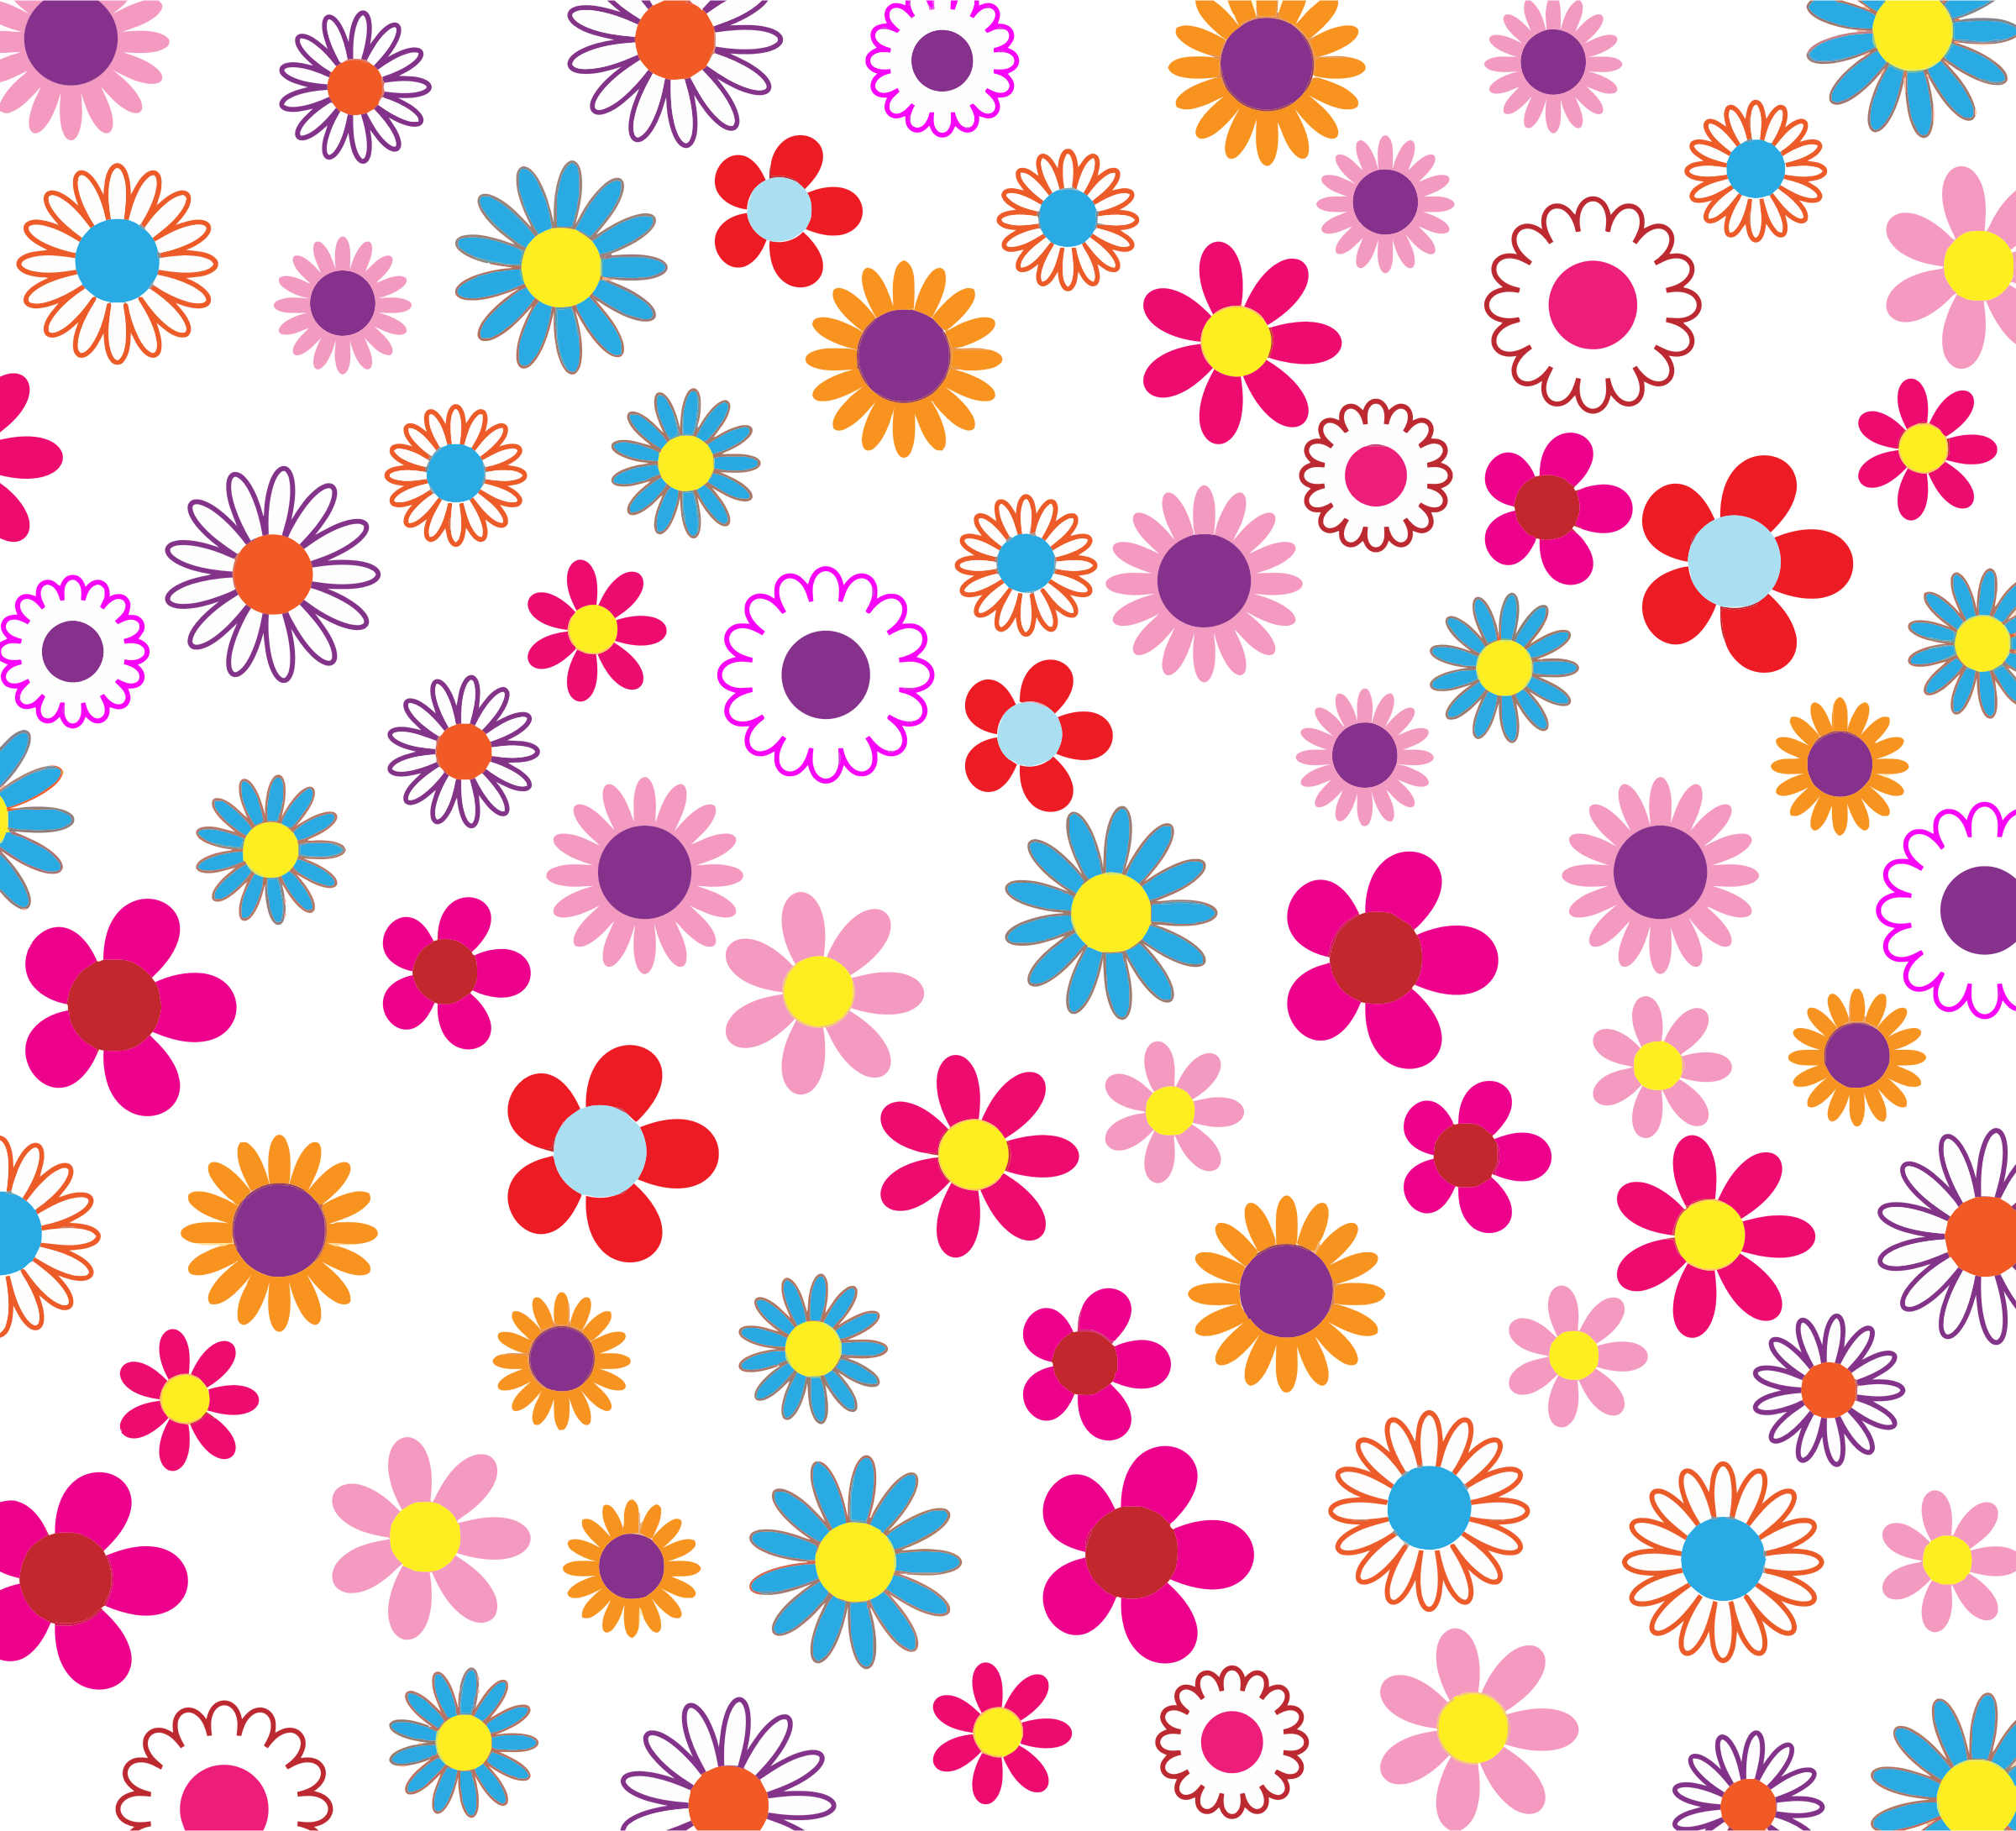 Flower clipart wallpaper vector download Free Background Floral Cliparts, Download Free Clip Art, Free Clip ... vector download